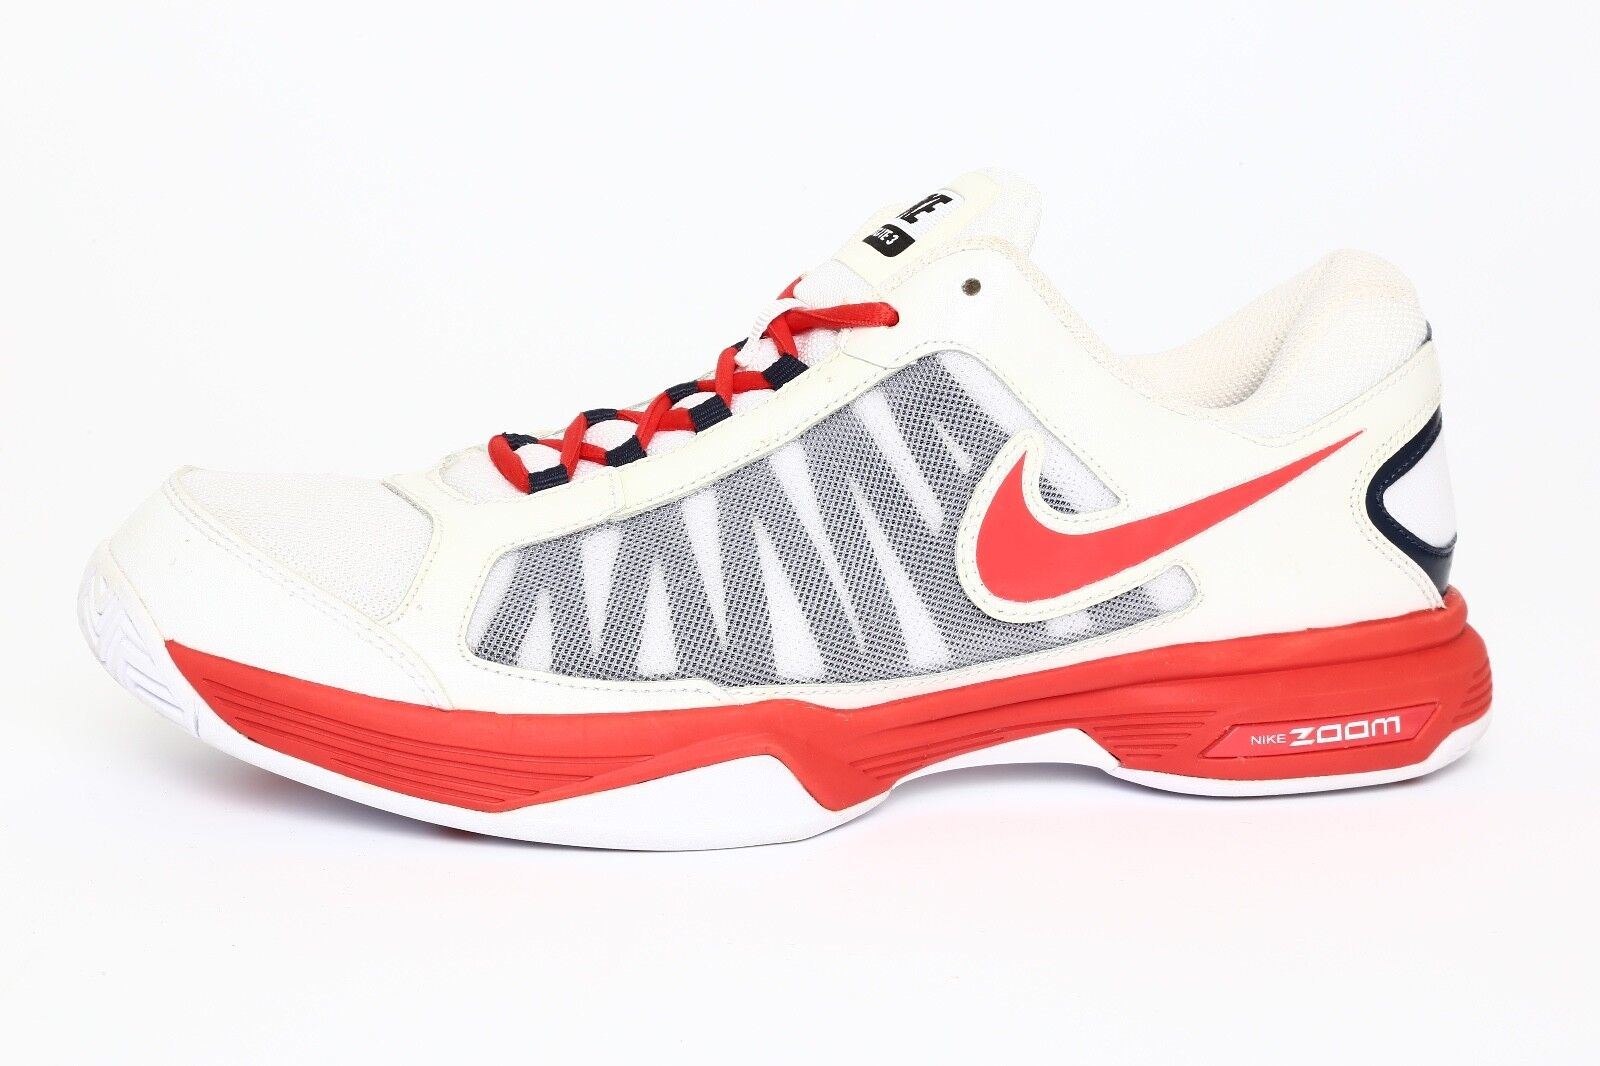 Nike Zoom Courtlite 3 Men's Red 2659 White Sneaker Sz 12 2659 Red 034cbc